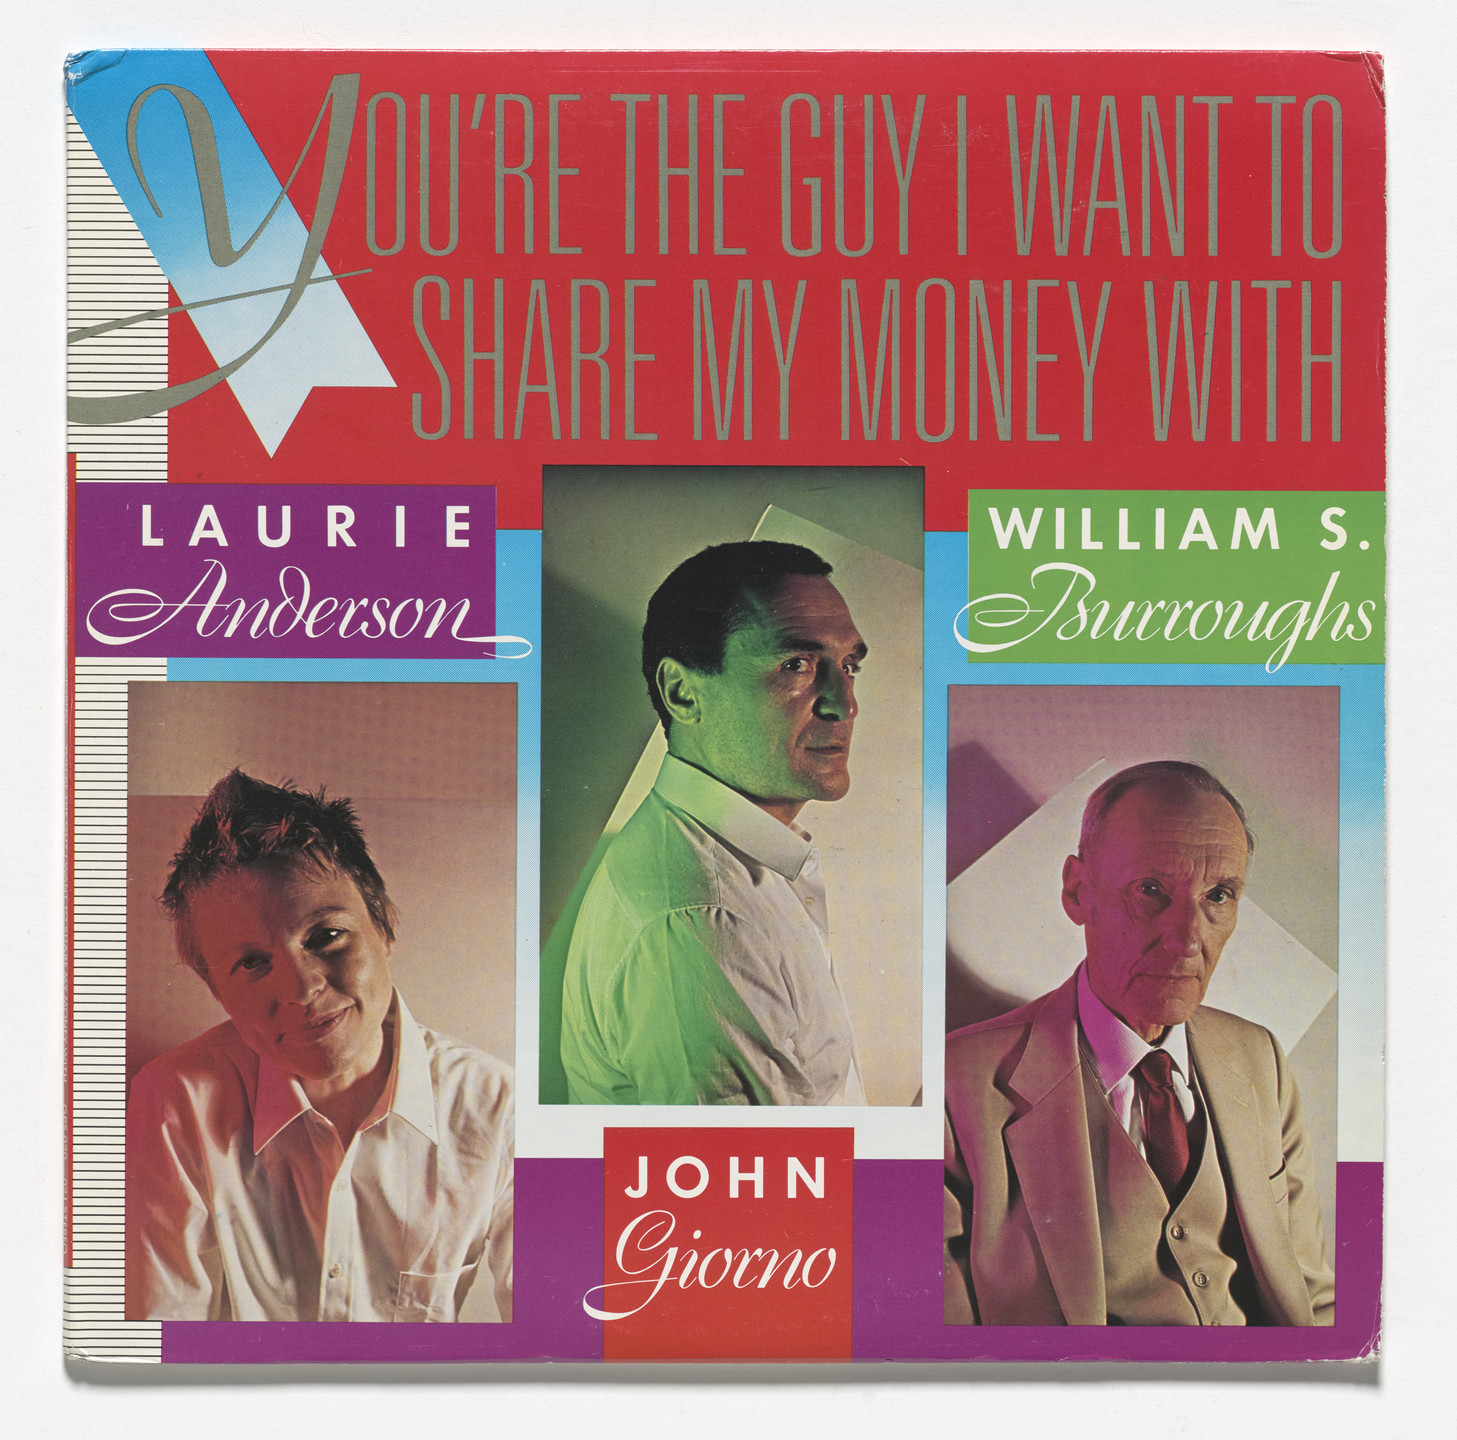 Various Artists, Laurie Anderson, John Giorno, William S. Burroughs. You're the Guy I Want to Share My Money With,. 1981